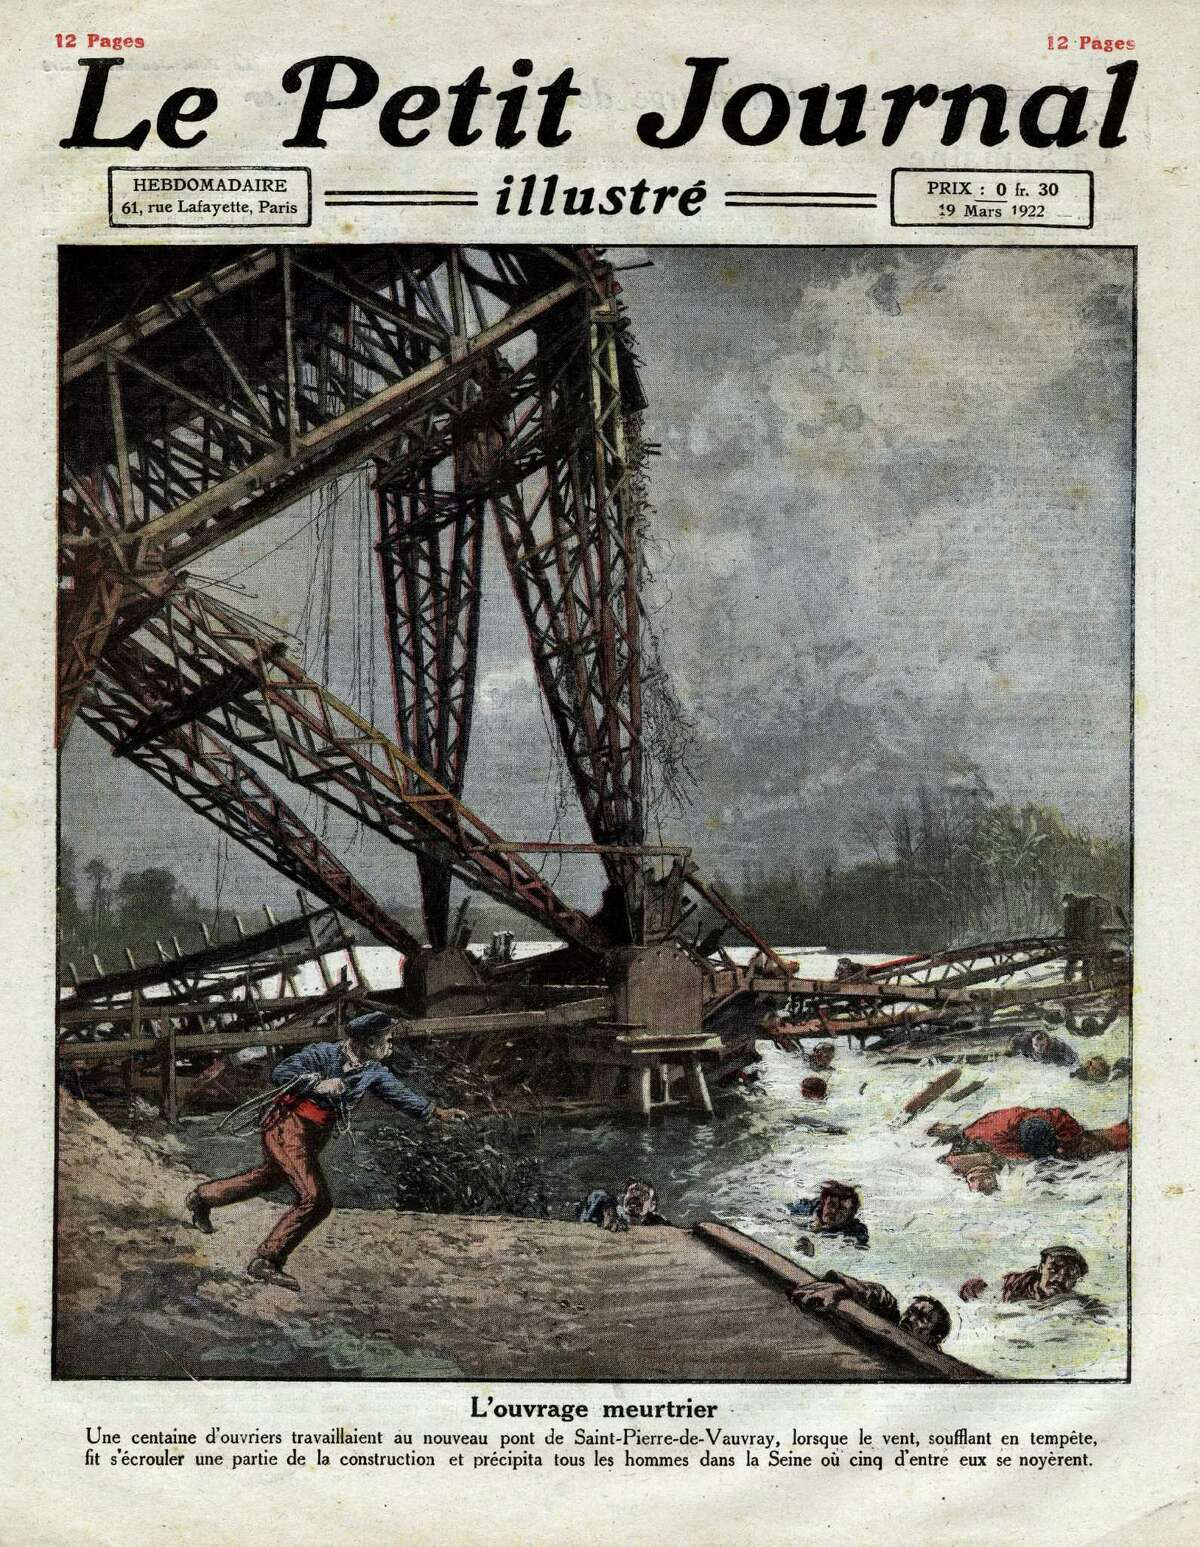 Collapse of the newly constructed Saint-Pierre-du-Vauvray Bridge during a storm, in Haute-Normandie, France, and drowning of five workmen in the river Seine, Frontpage of French newspaper Le Petit Journal Illustre, March 19, 1922, Private Collection